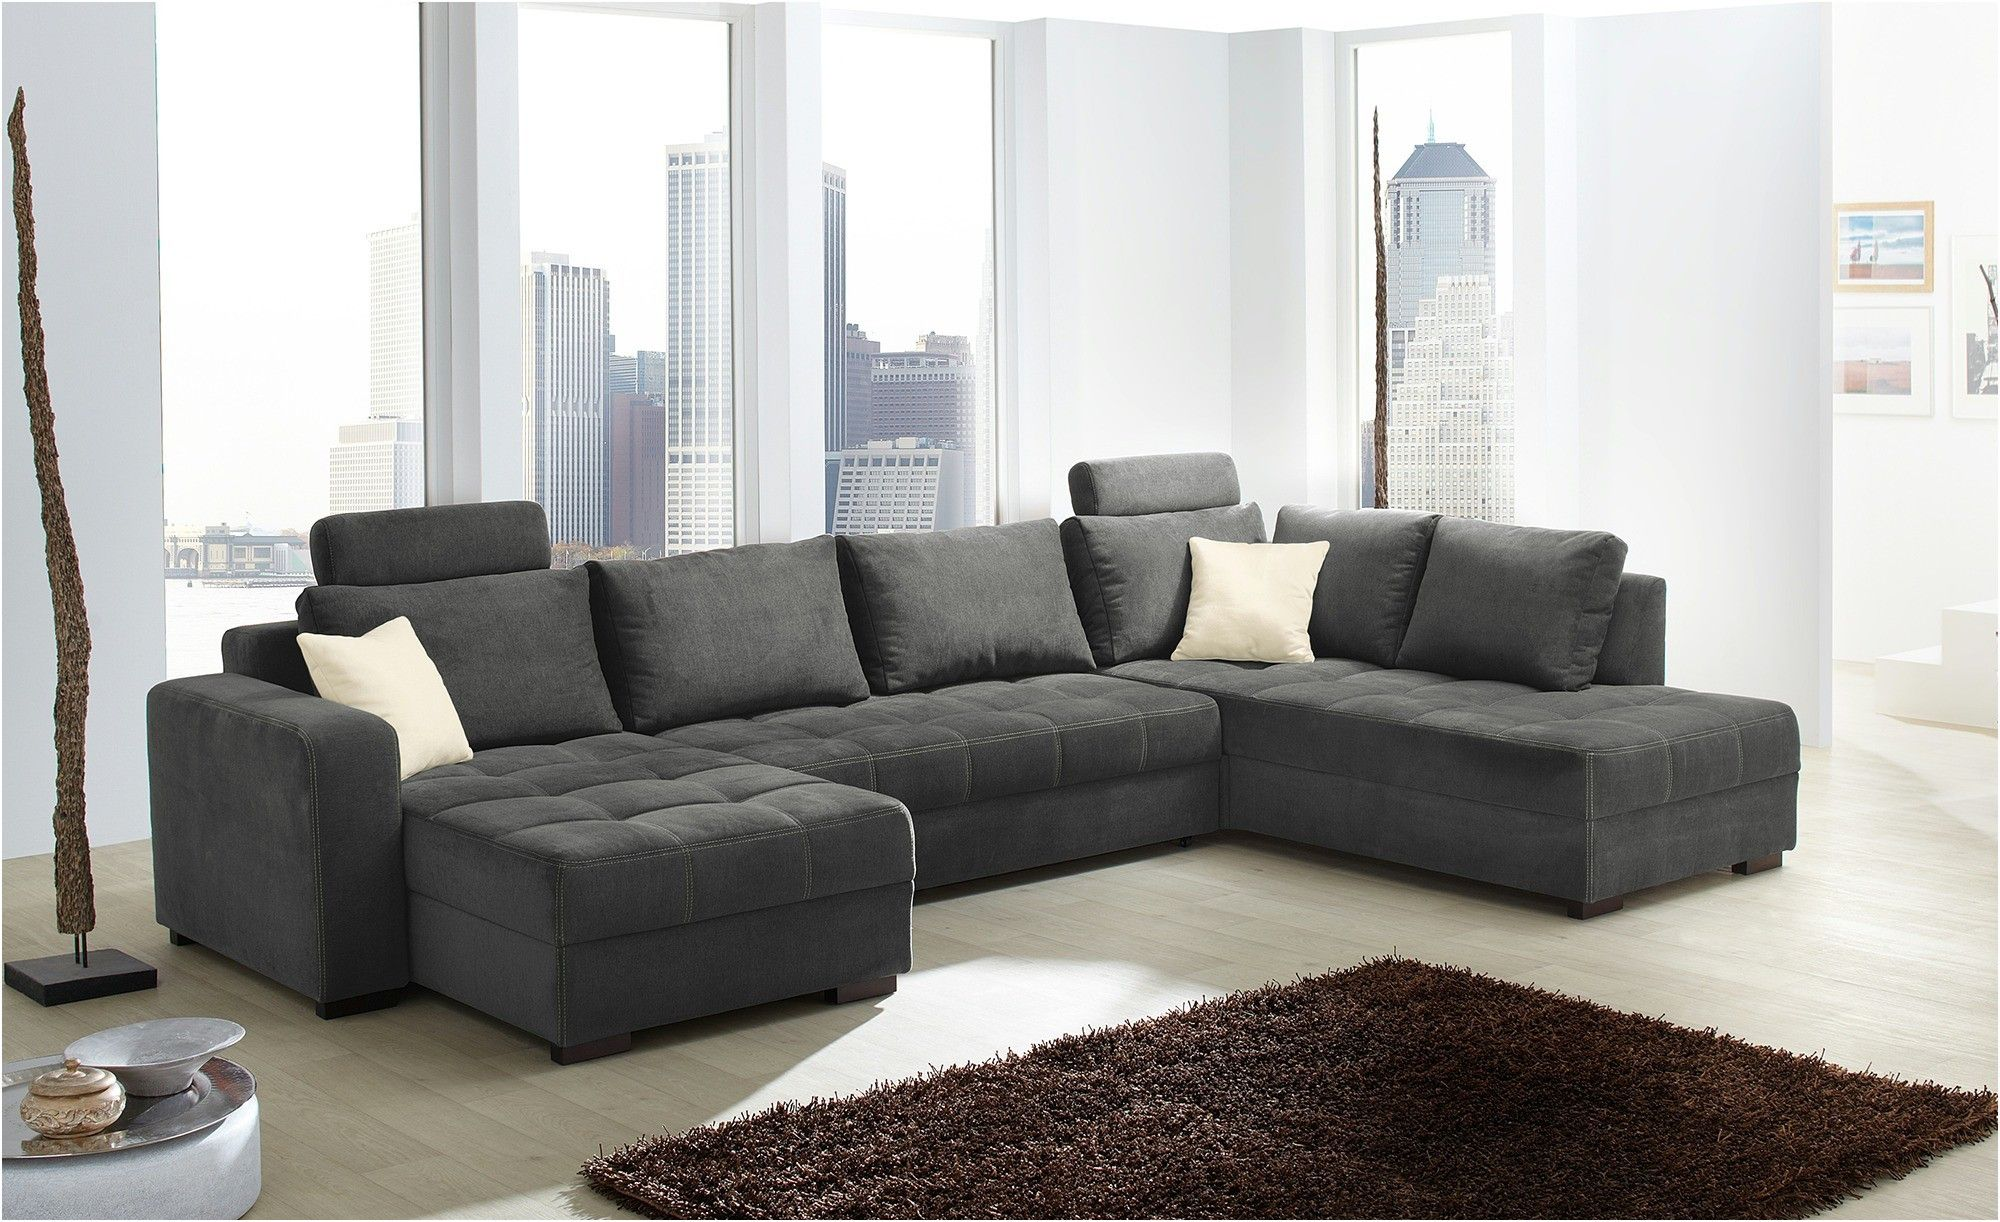 Petite Poco Angebote Couch Home Decor Home Family Living Rooms